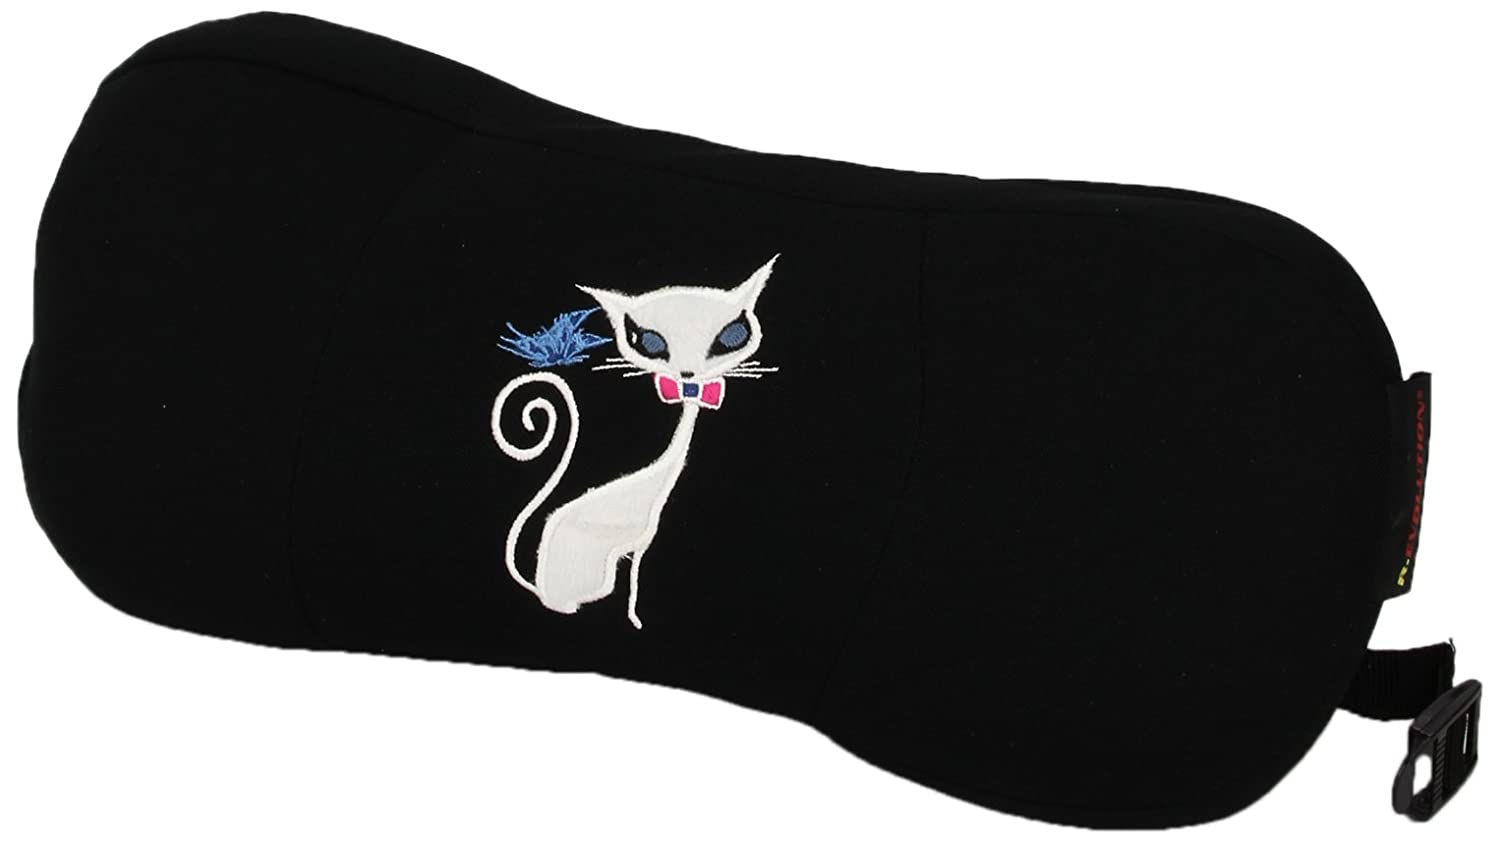 Bottari SpA 17164 My Cat Neck Support - Pink